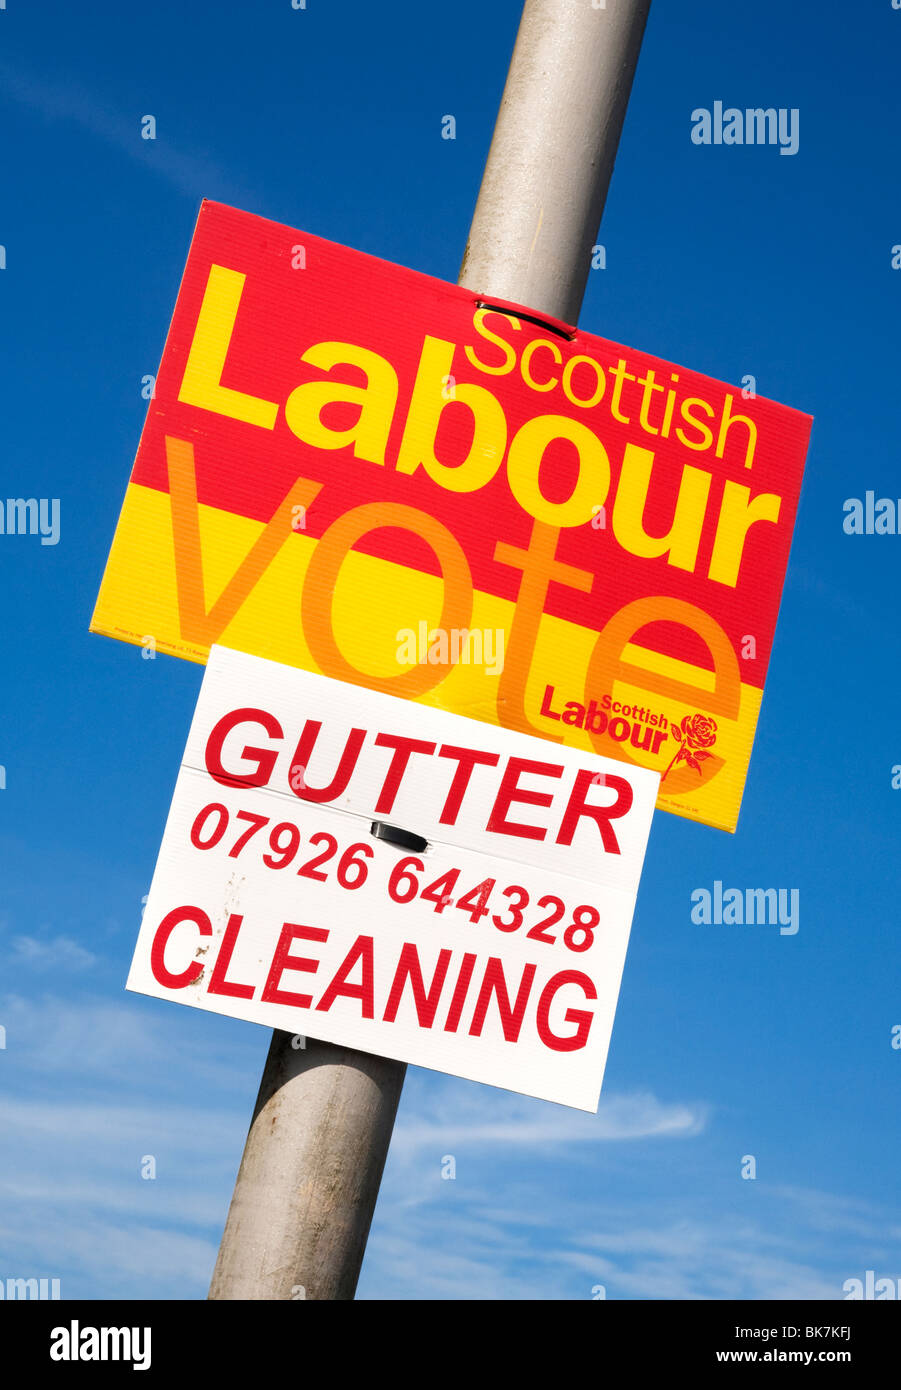 An amusing Labour 2010 election poster on a lamppost above another sign for gutter cleaning. - Stock Image